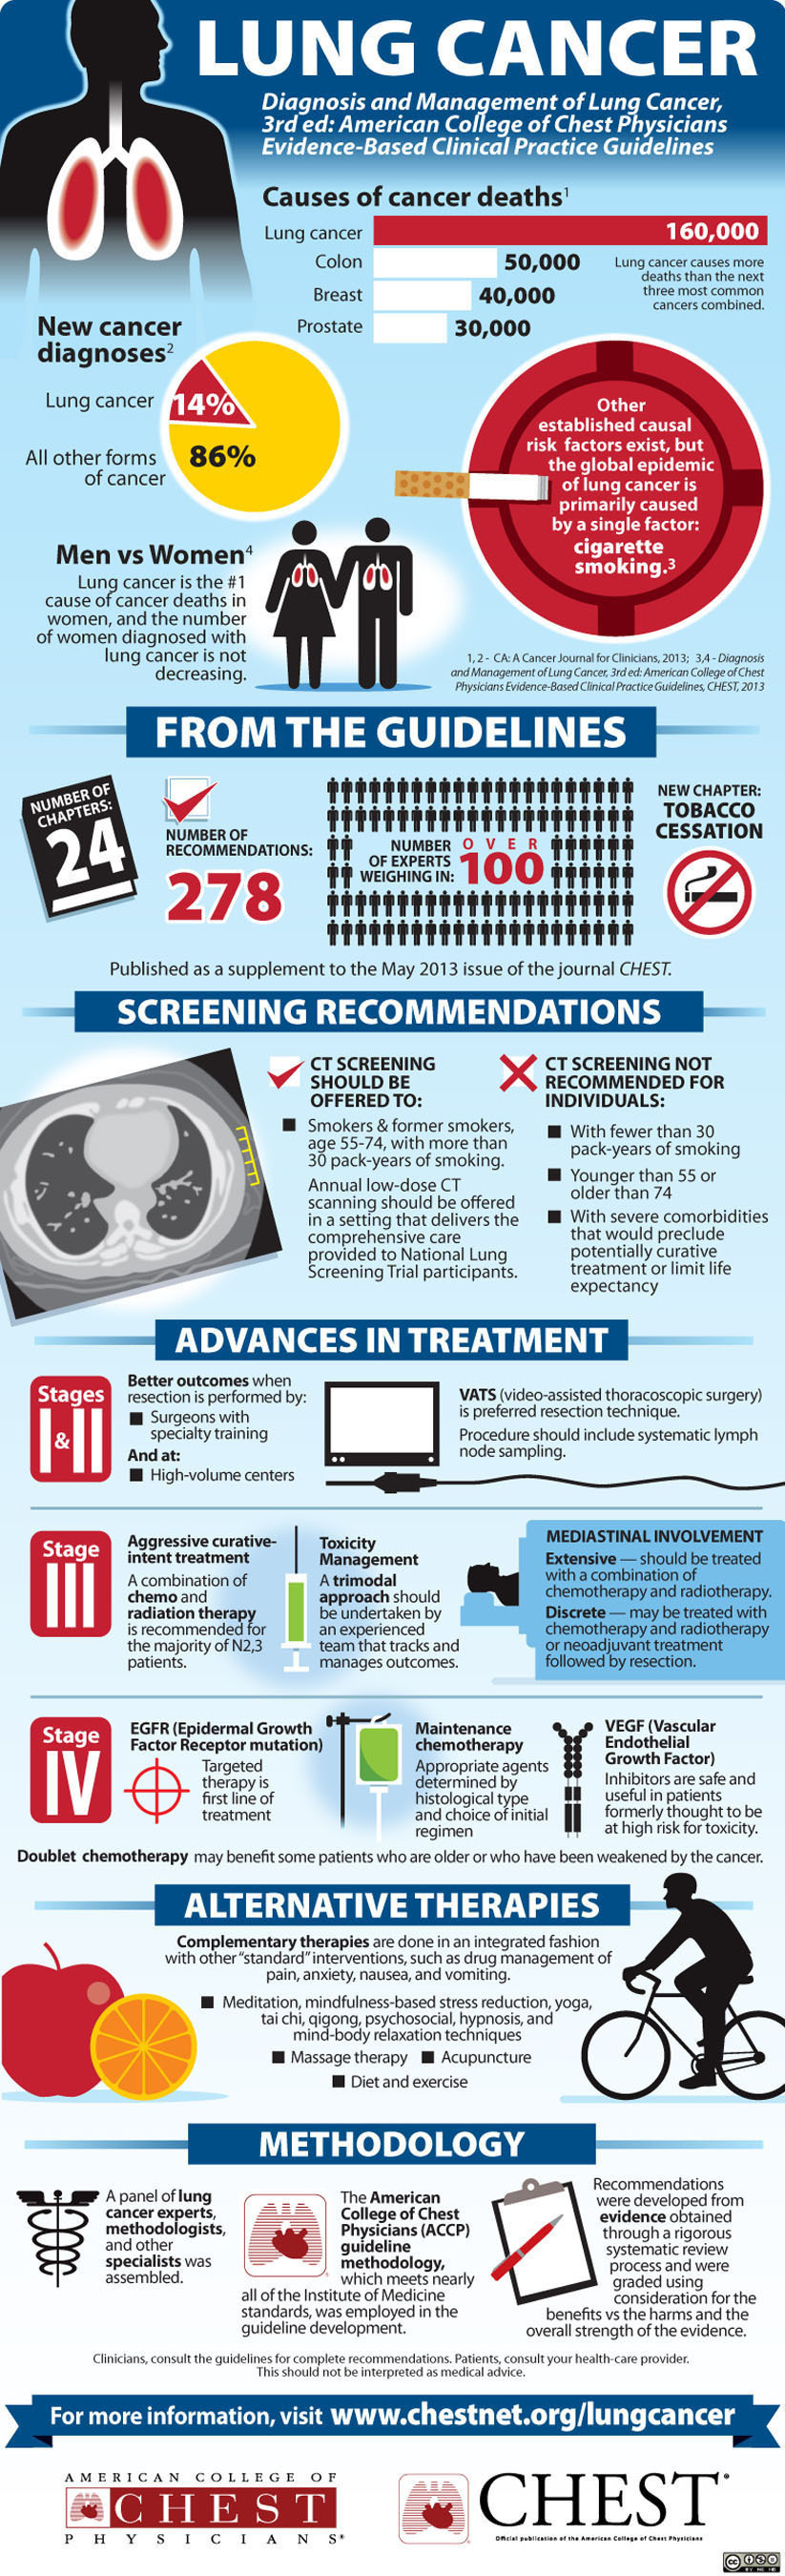 Infographic: Diagnosis and Management of Lung Cancer: ACCP Evidence-Based Clinical Practice Guidelines 2013.  (PRNewsFoto/American College of Chest Physicians)